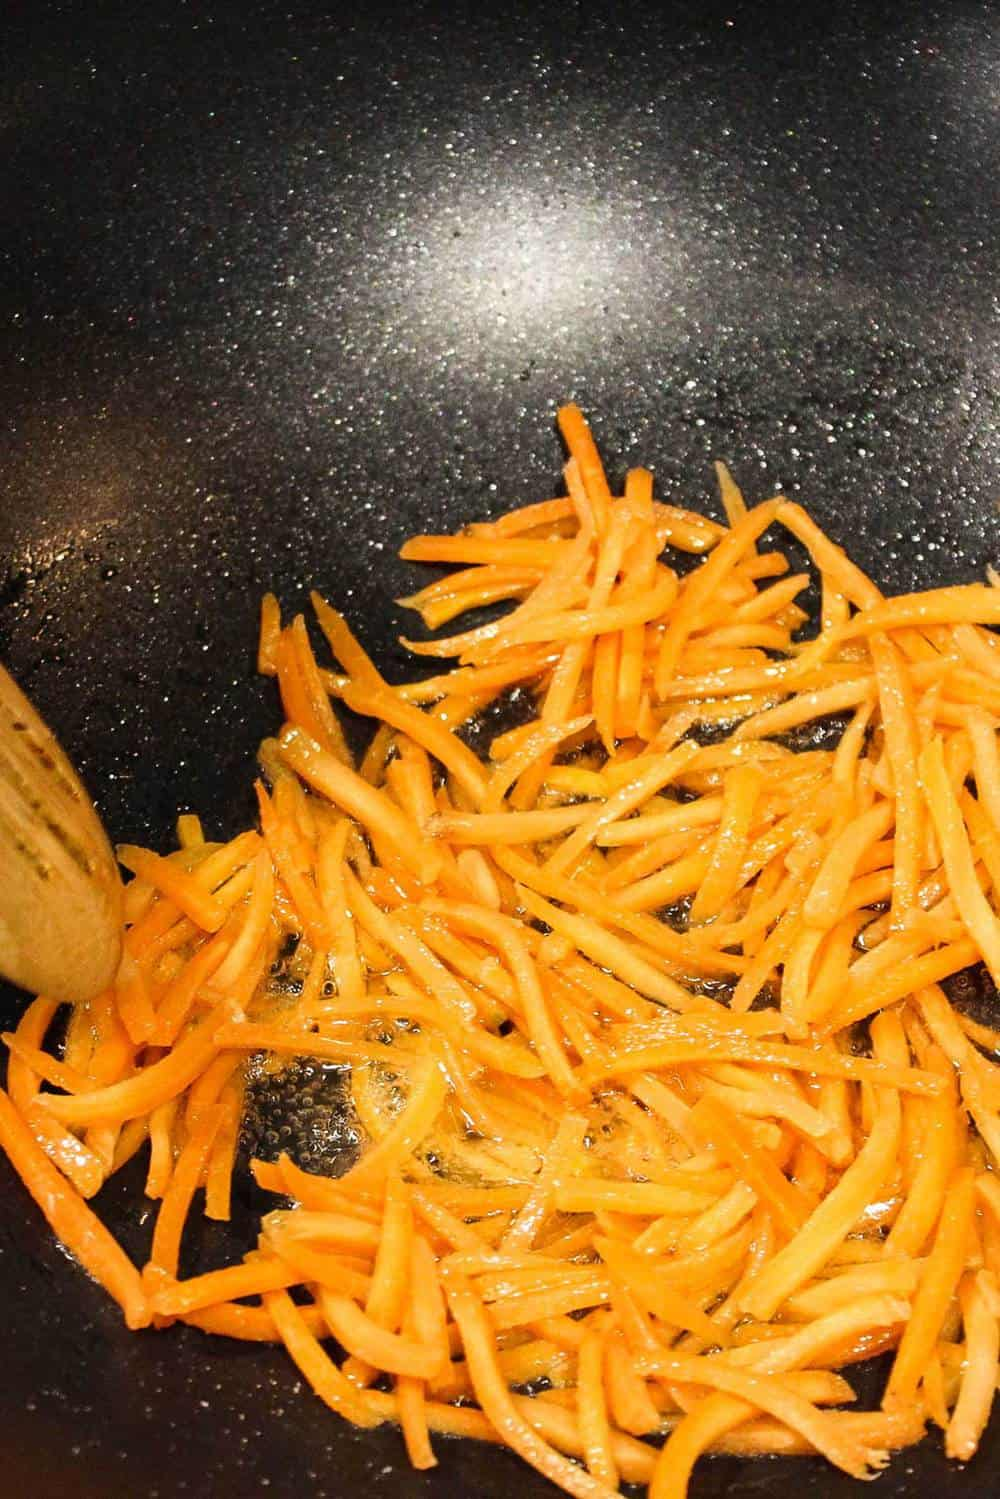 Shredded carrots being stir fried in a wok for bibimbap